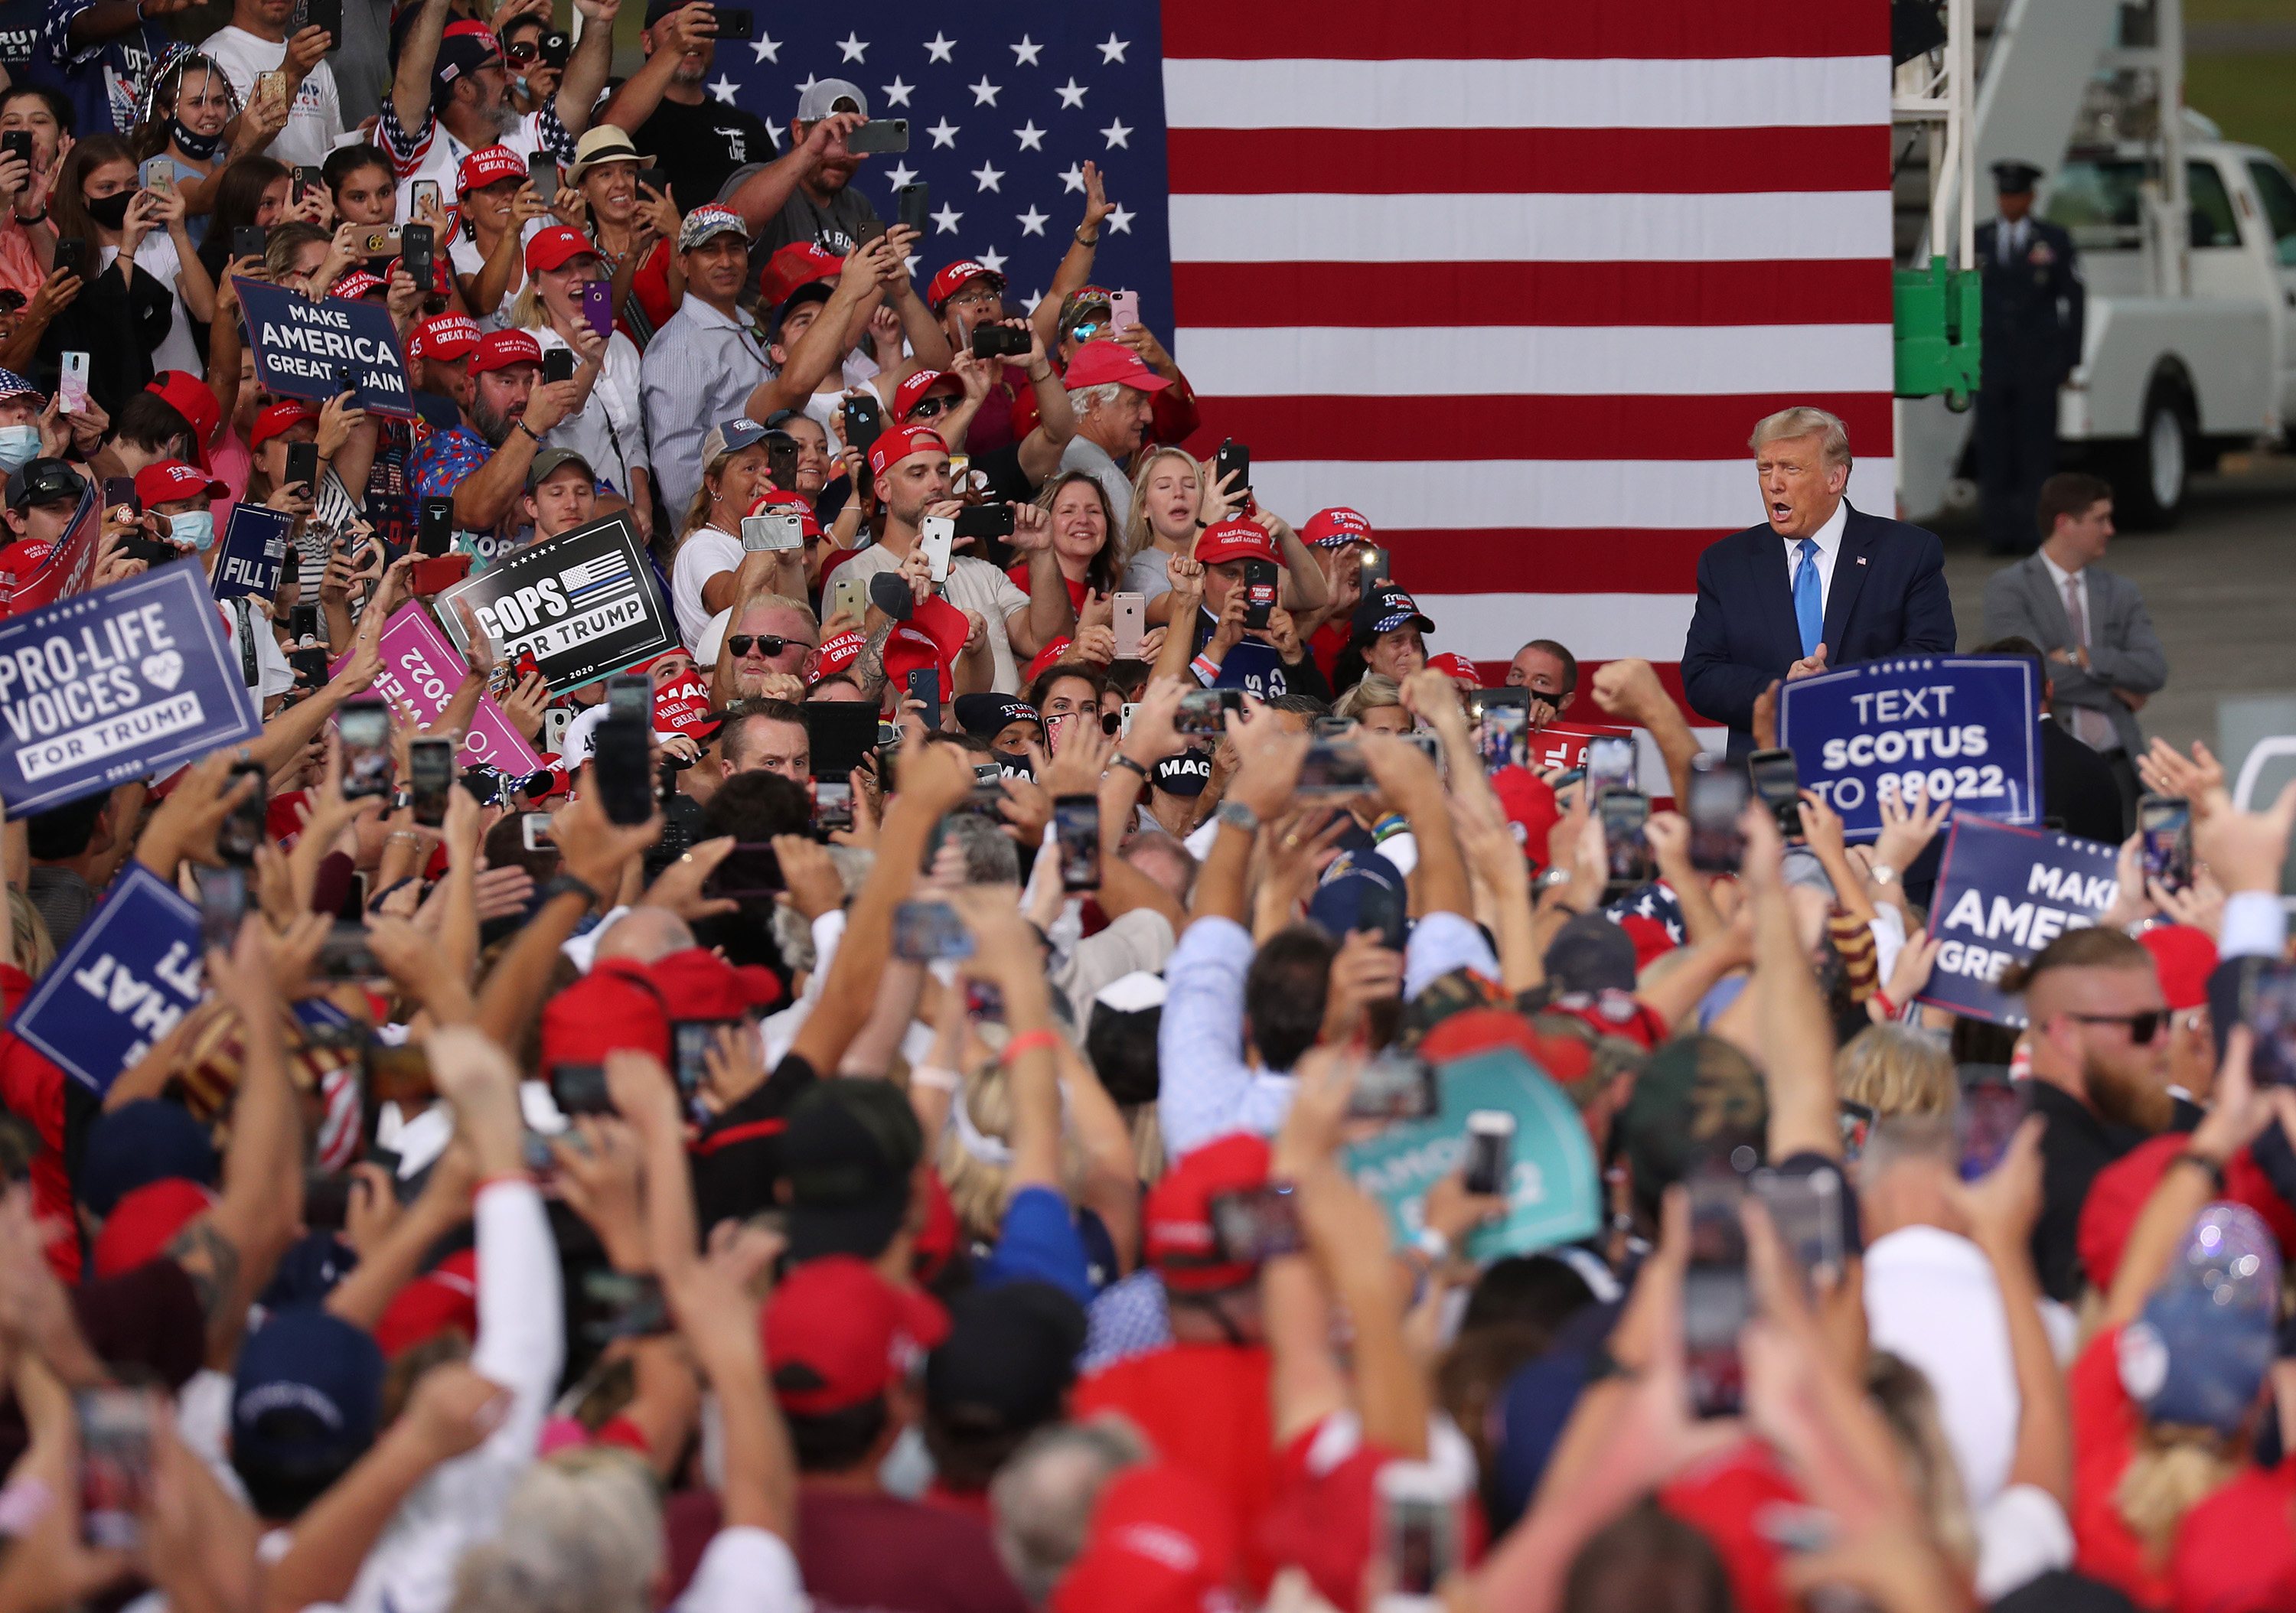 president trump visits jacksonville for great american comeback rally https www news4jax com news local 2020 09 24 watch live jacksonville crowd awaits rally by president trump